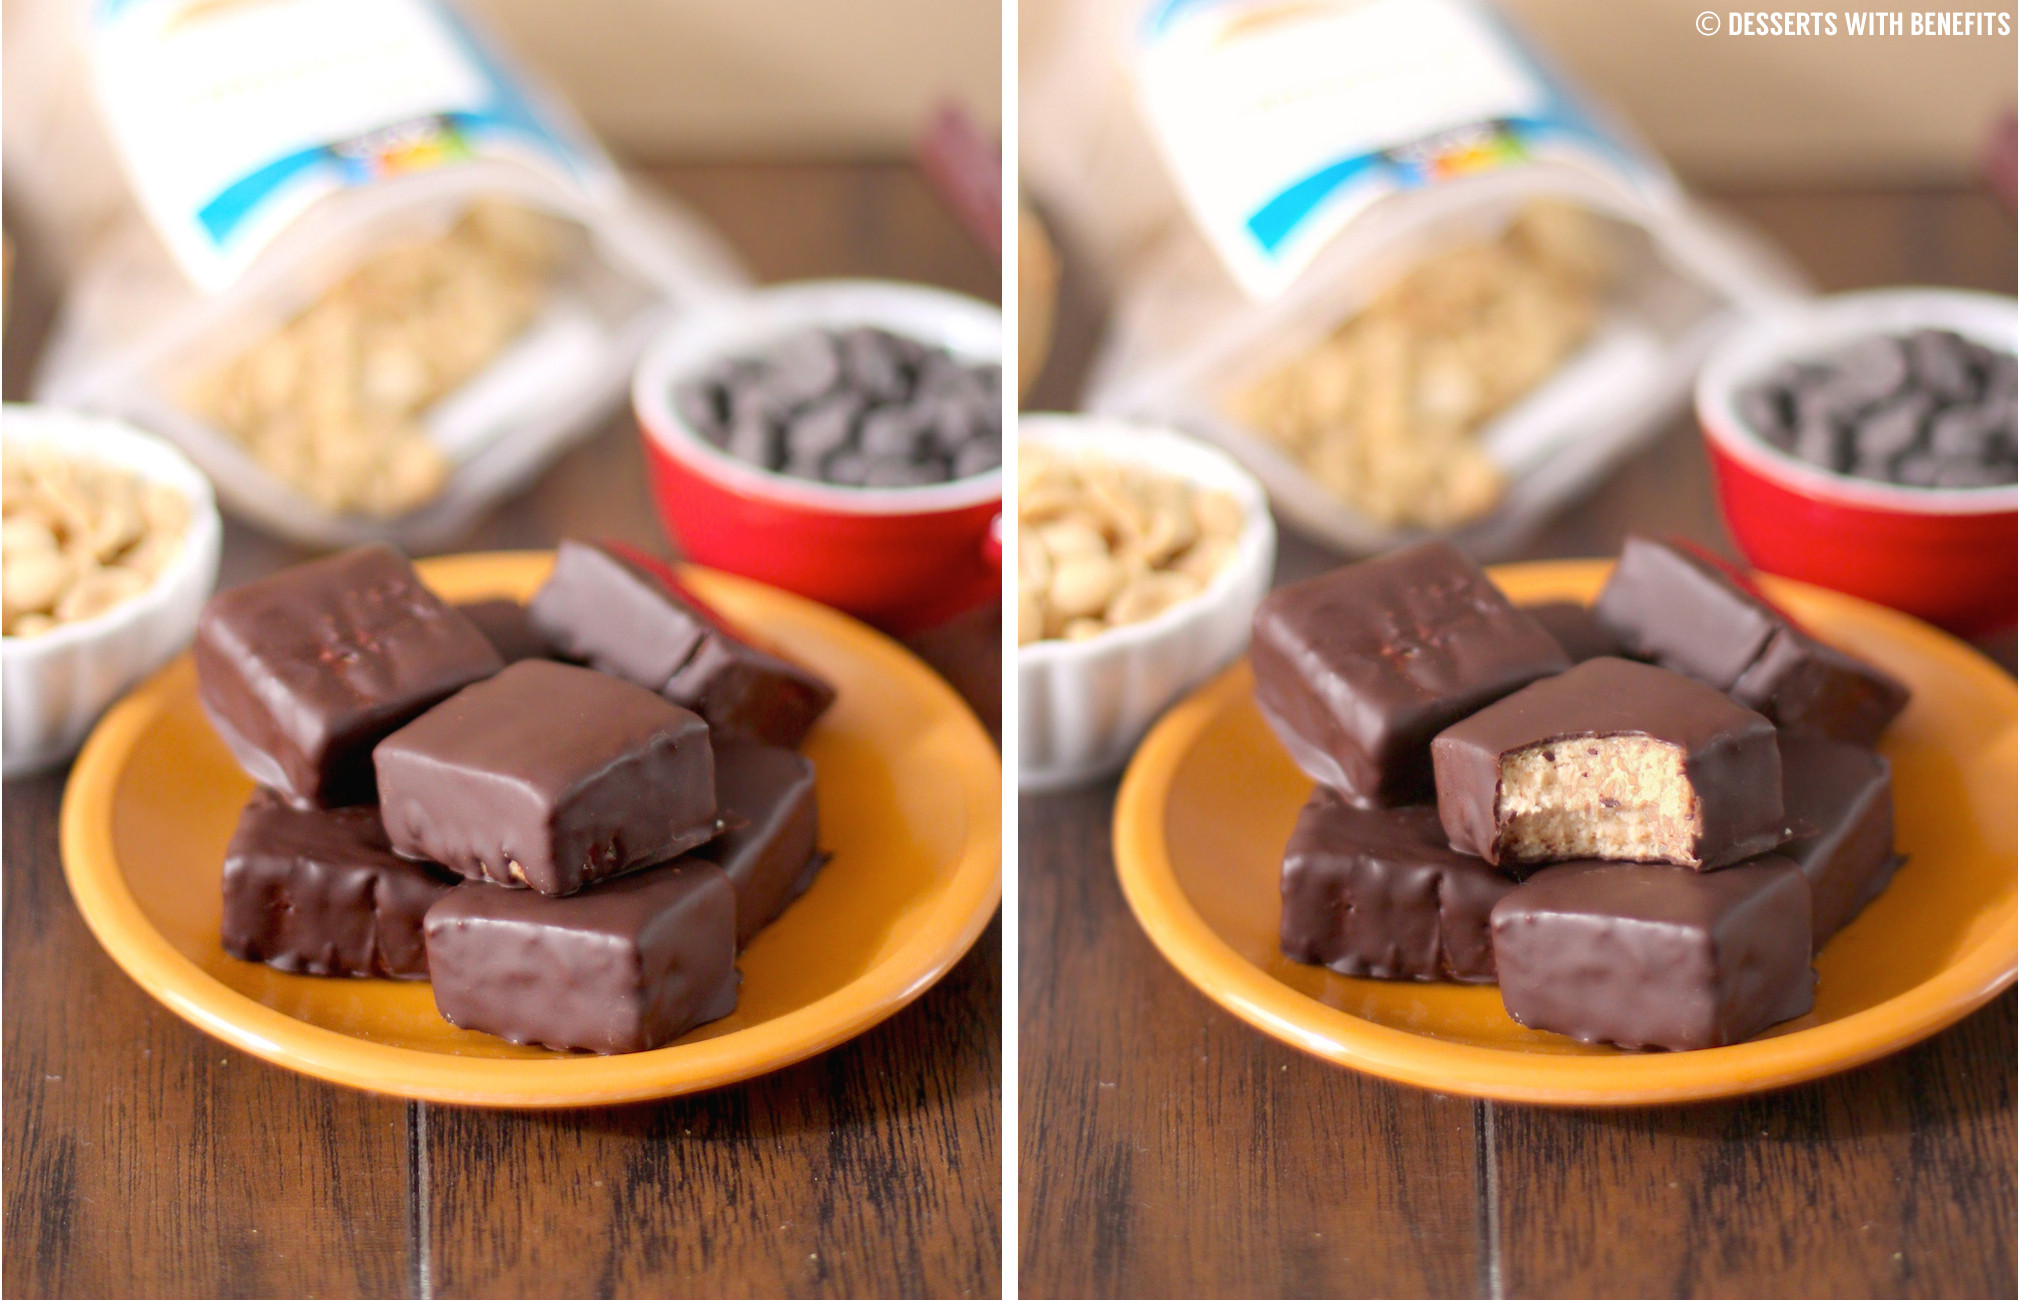 Healthy Protein Desserts  Healthy Reese s Fudge Recipe High Protein